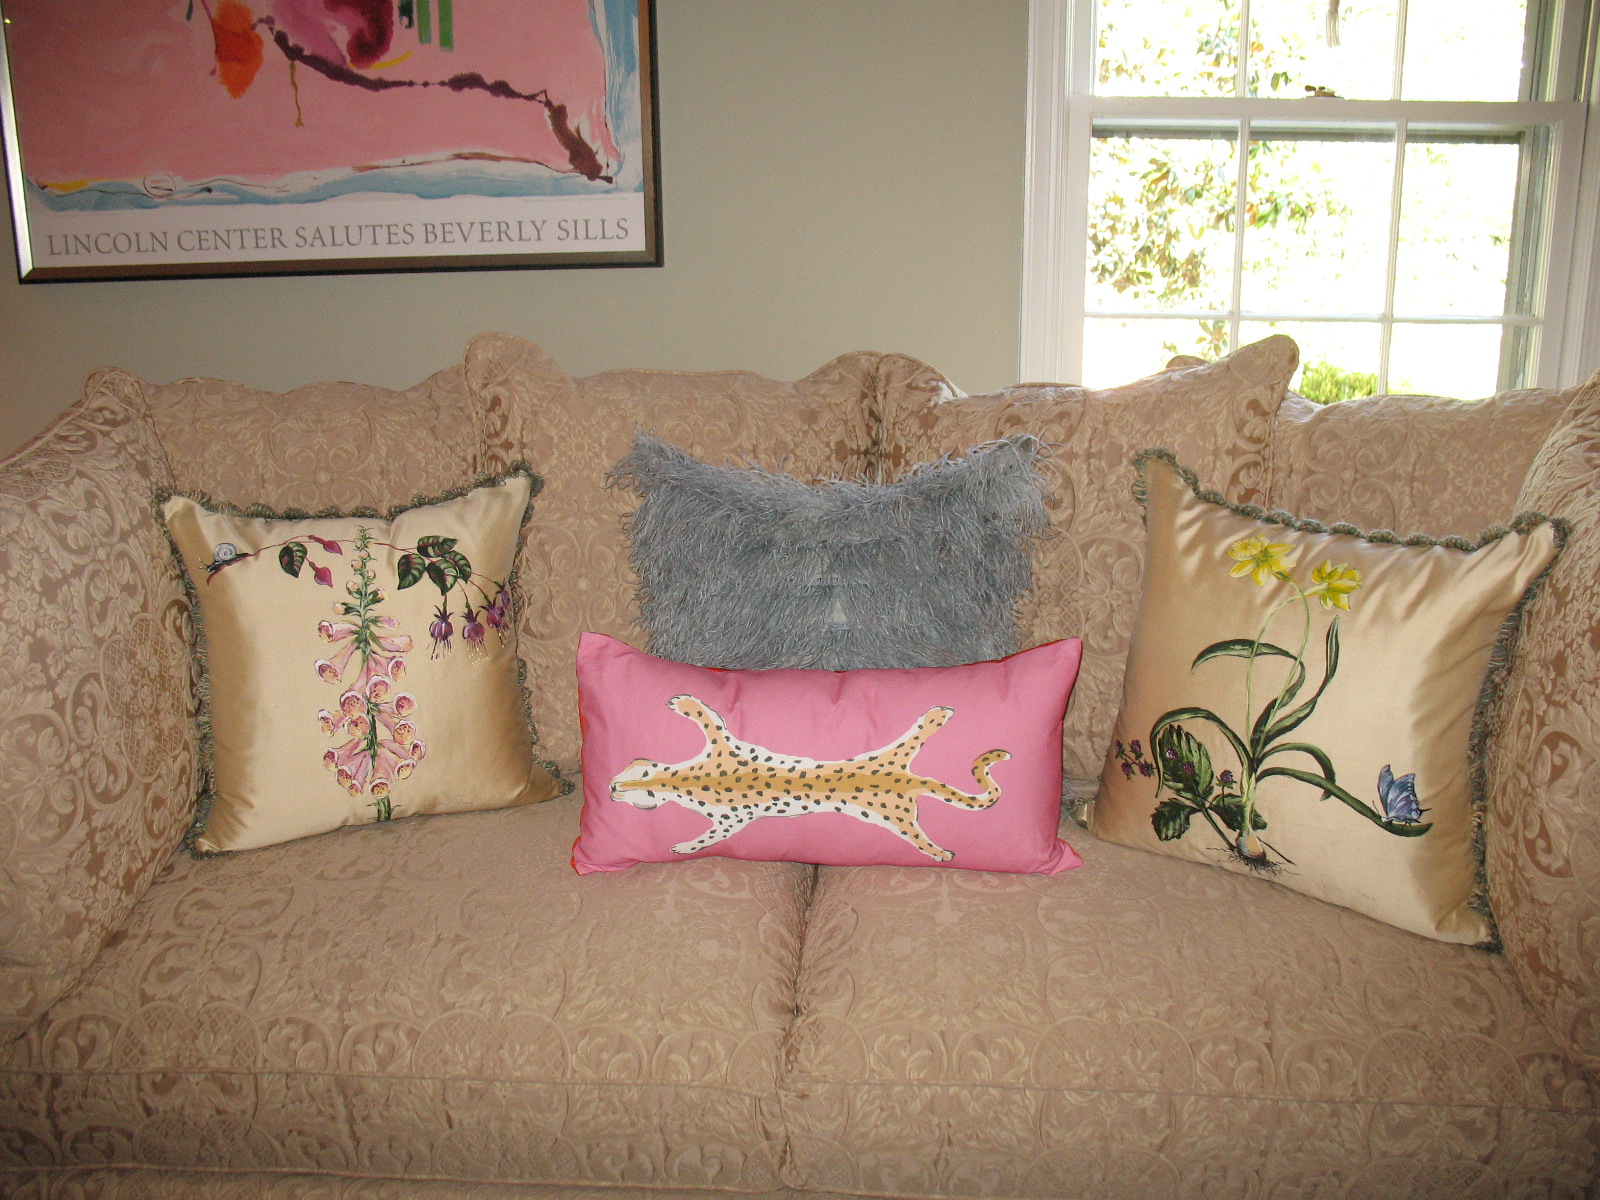 leopard furniture z for id textiles more throws calf sale pillows org pillow f at collectibles stencil hair tiger